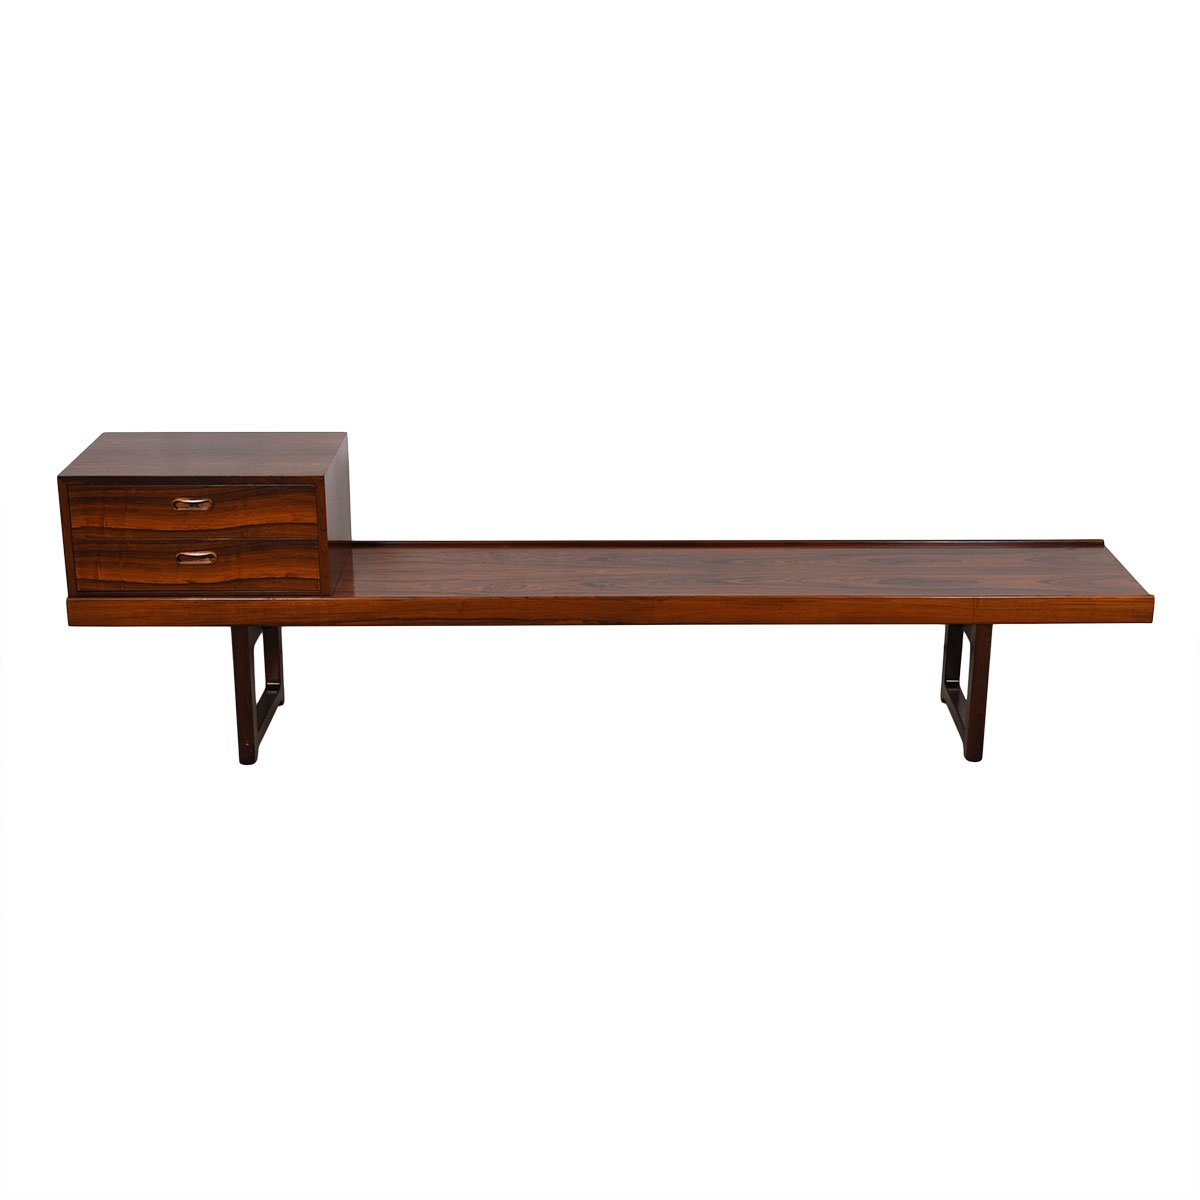 Danish Modern Rosewood Torbjorn Afdal Bruksbo Bench / Coffee Table